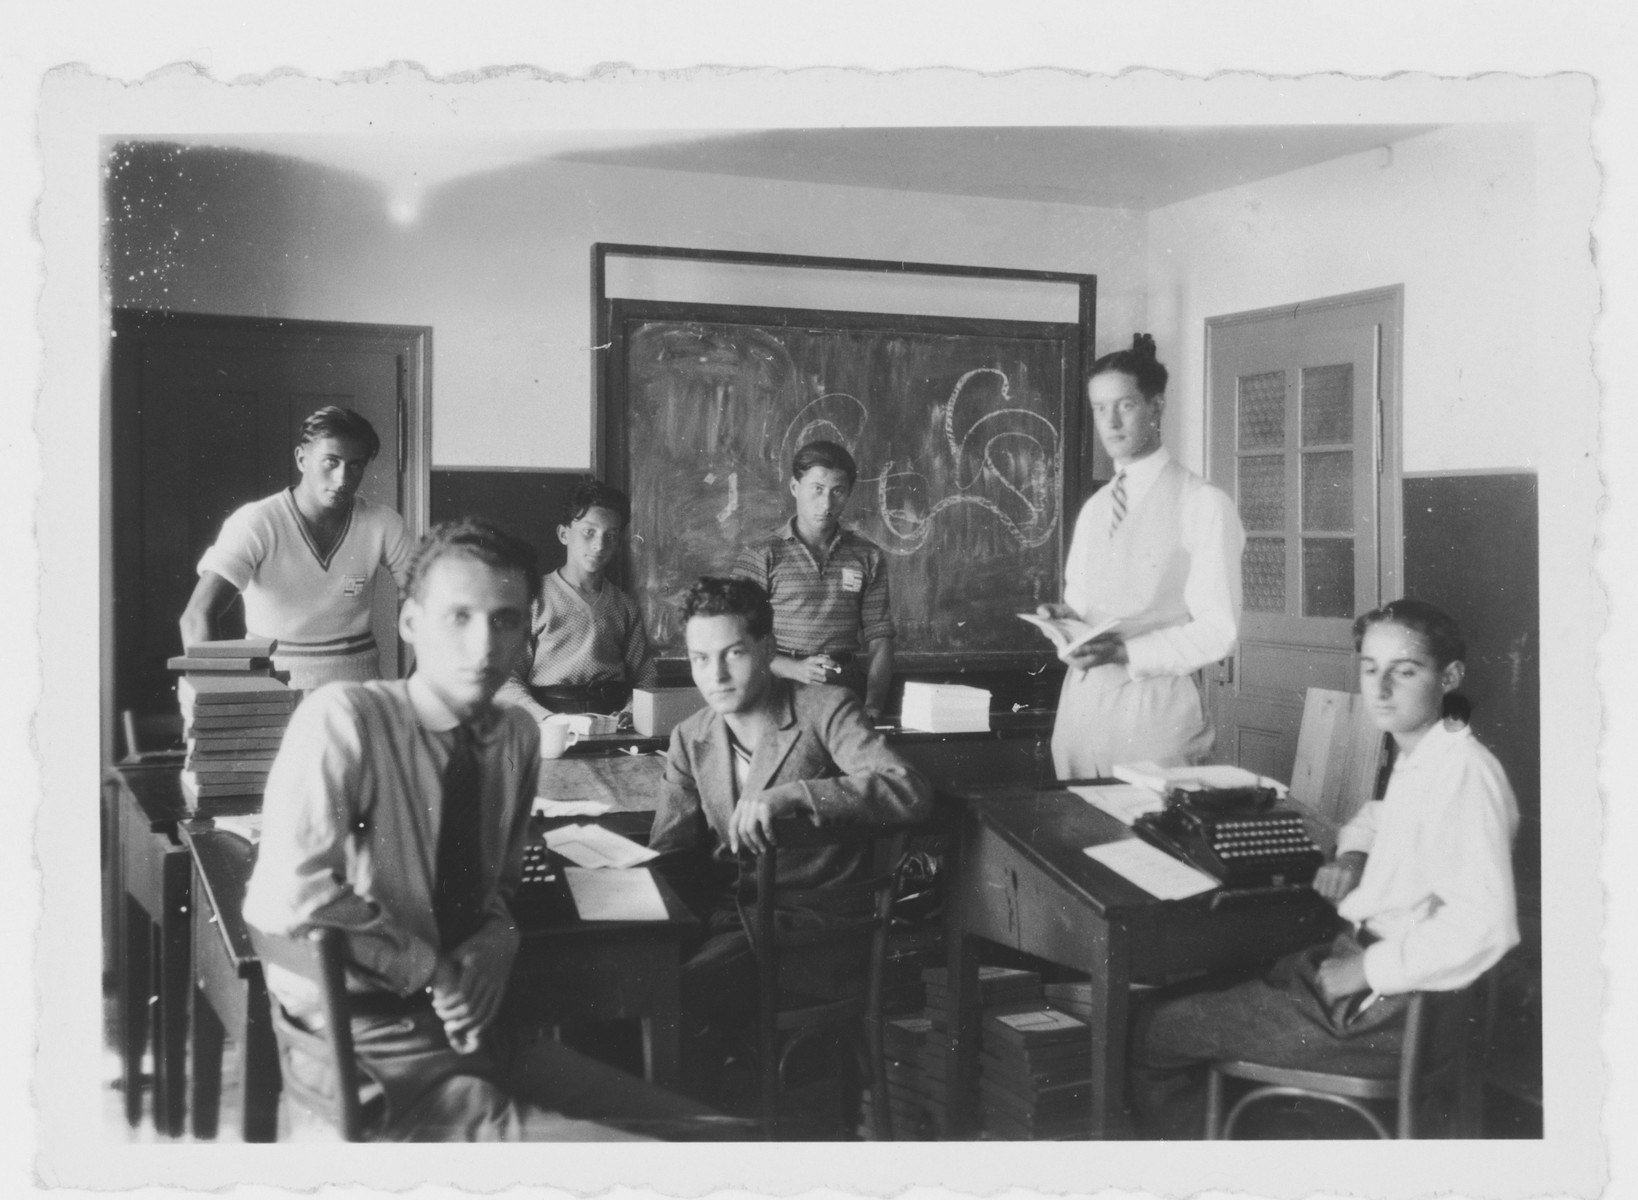 Italian teenagers sit by their desks in their high school classroom.  Mario Fabini is in the center in a suit.